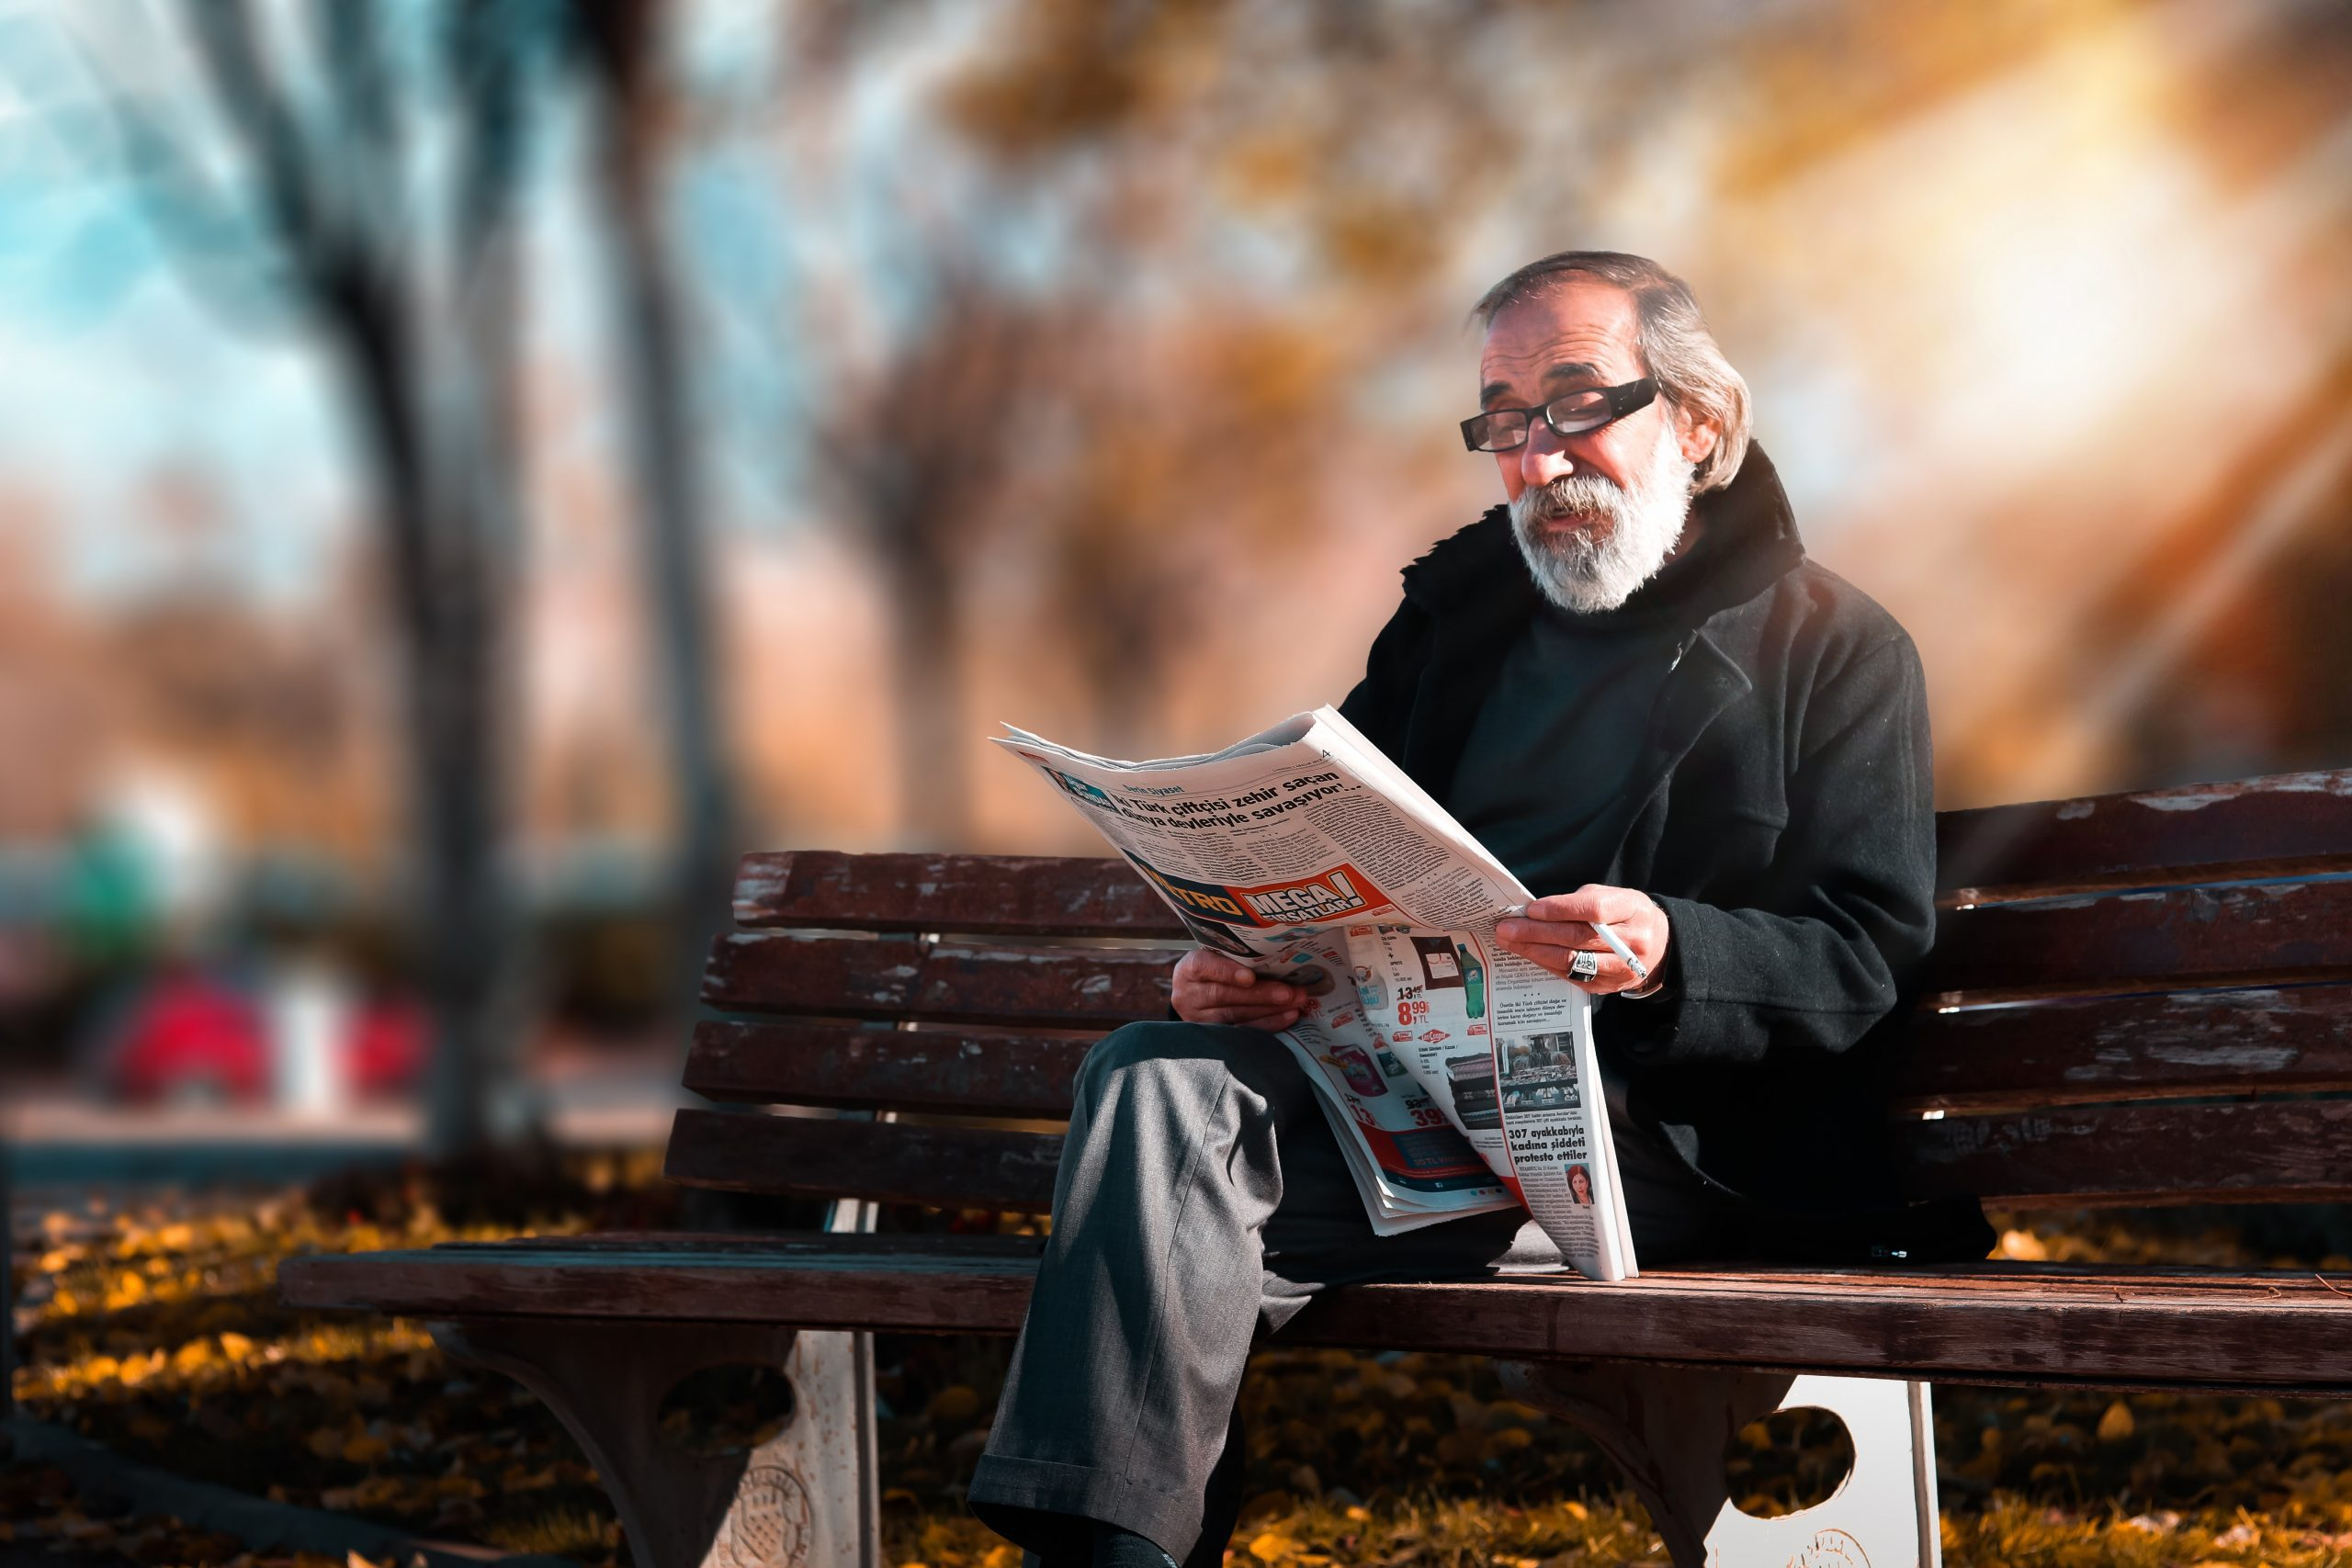 old man reading newspaper on bench